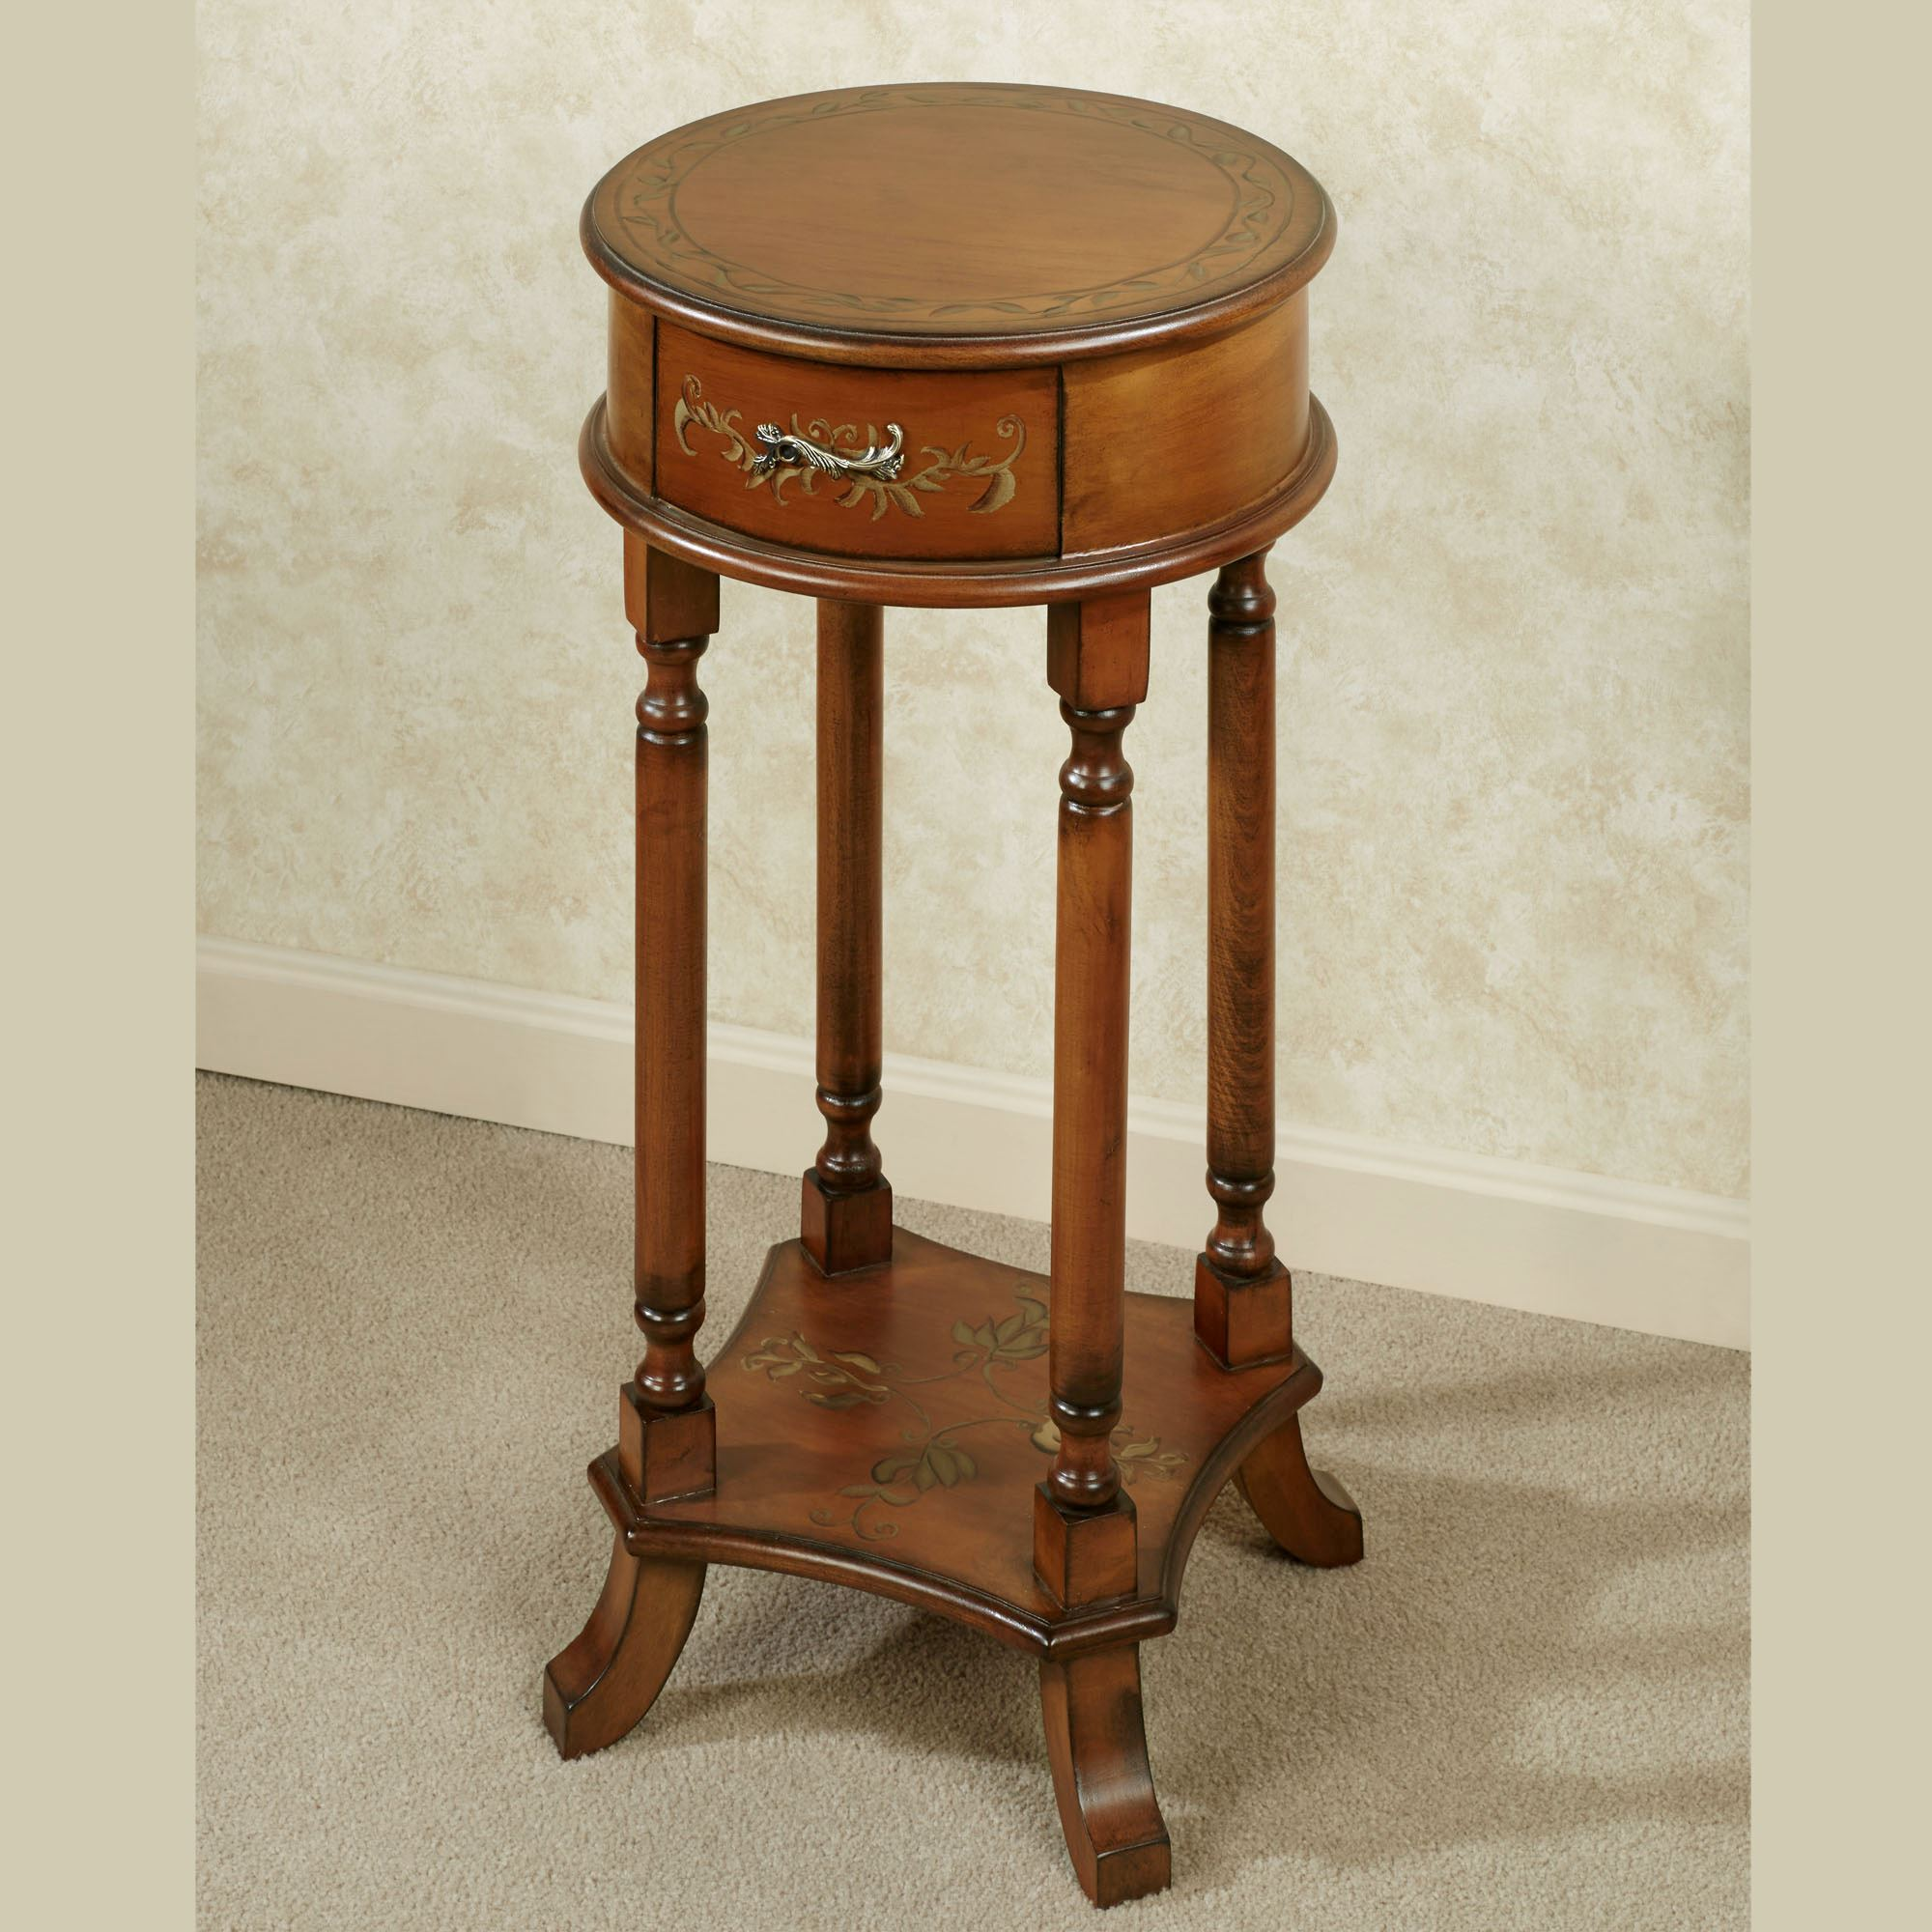 building shed the fantastic cool small cherry wood end tables trellis round accent table regal walnut touch zoom complete living room furniture packages ethan allen british